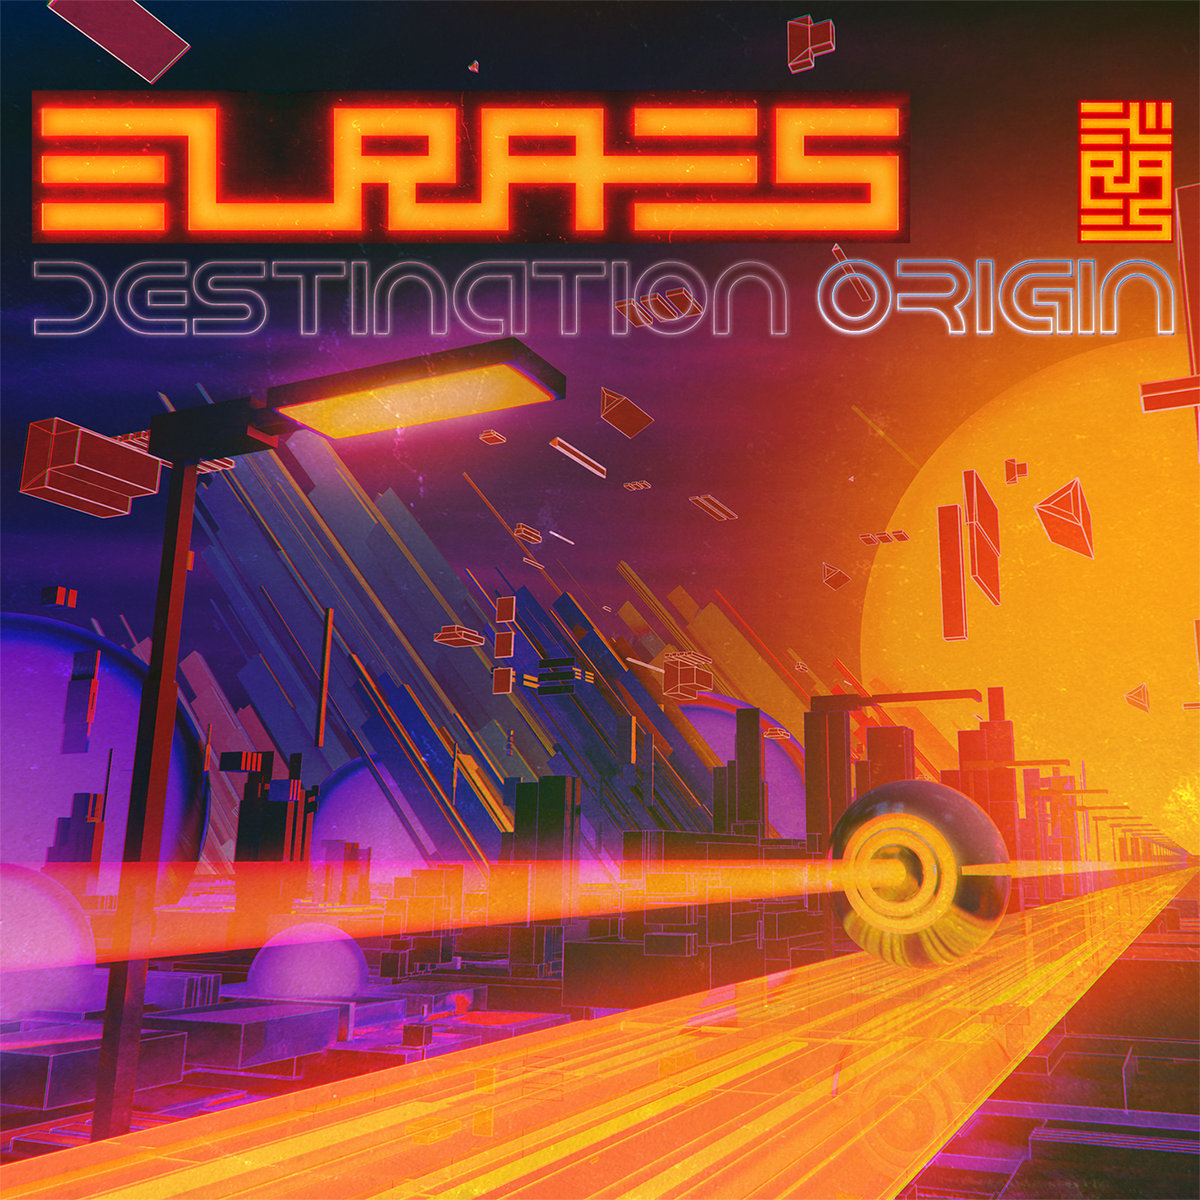 ElraesDestination Origin-Elraes-Art